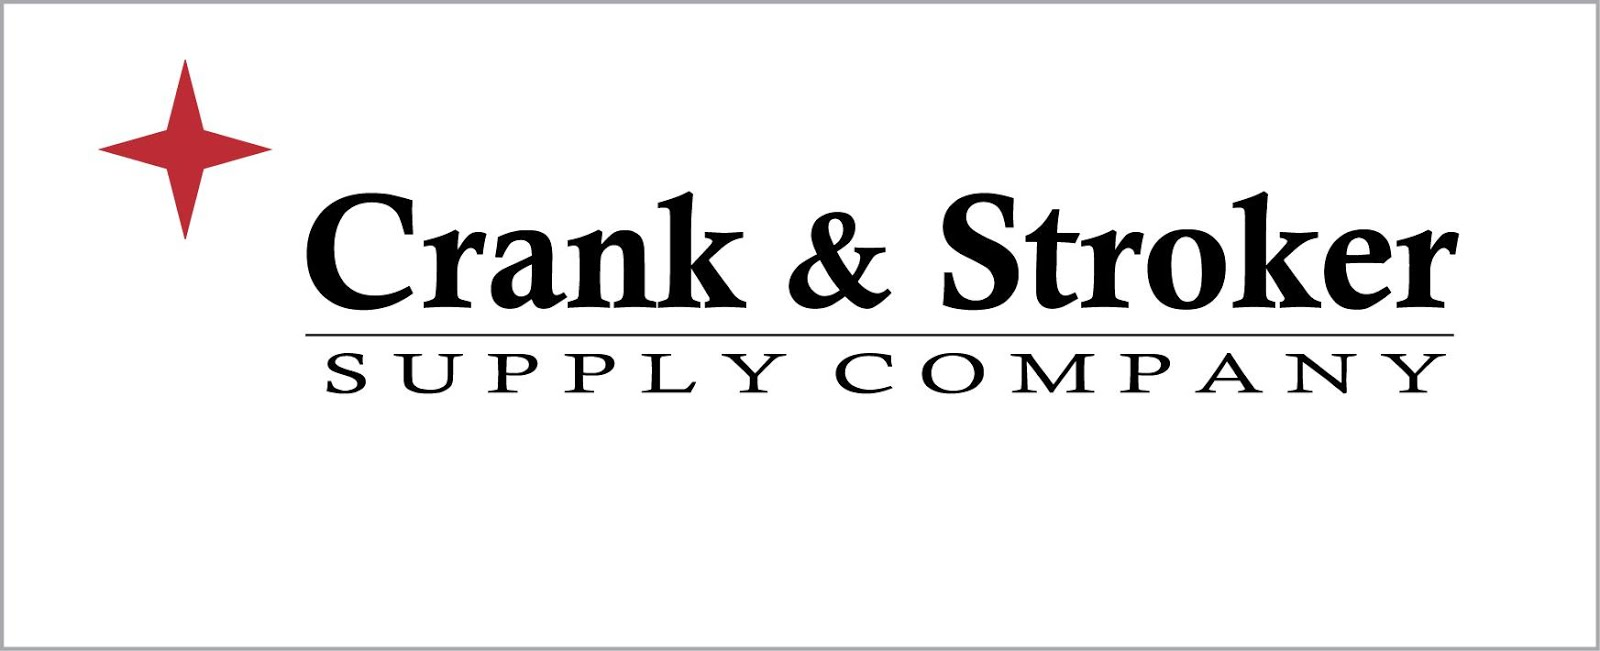 Please welcome Crank and Stroker